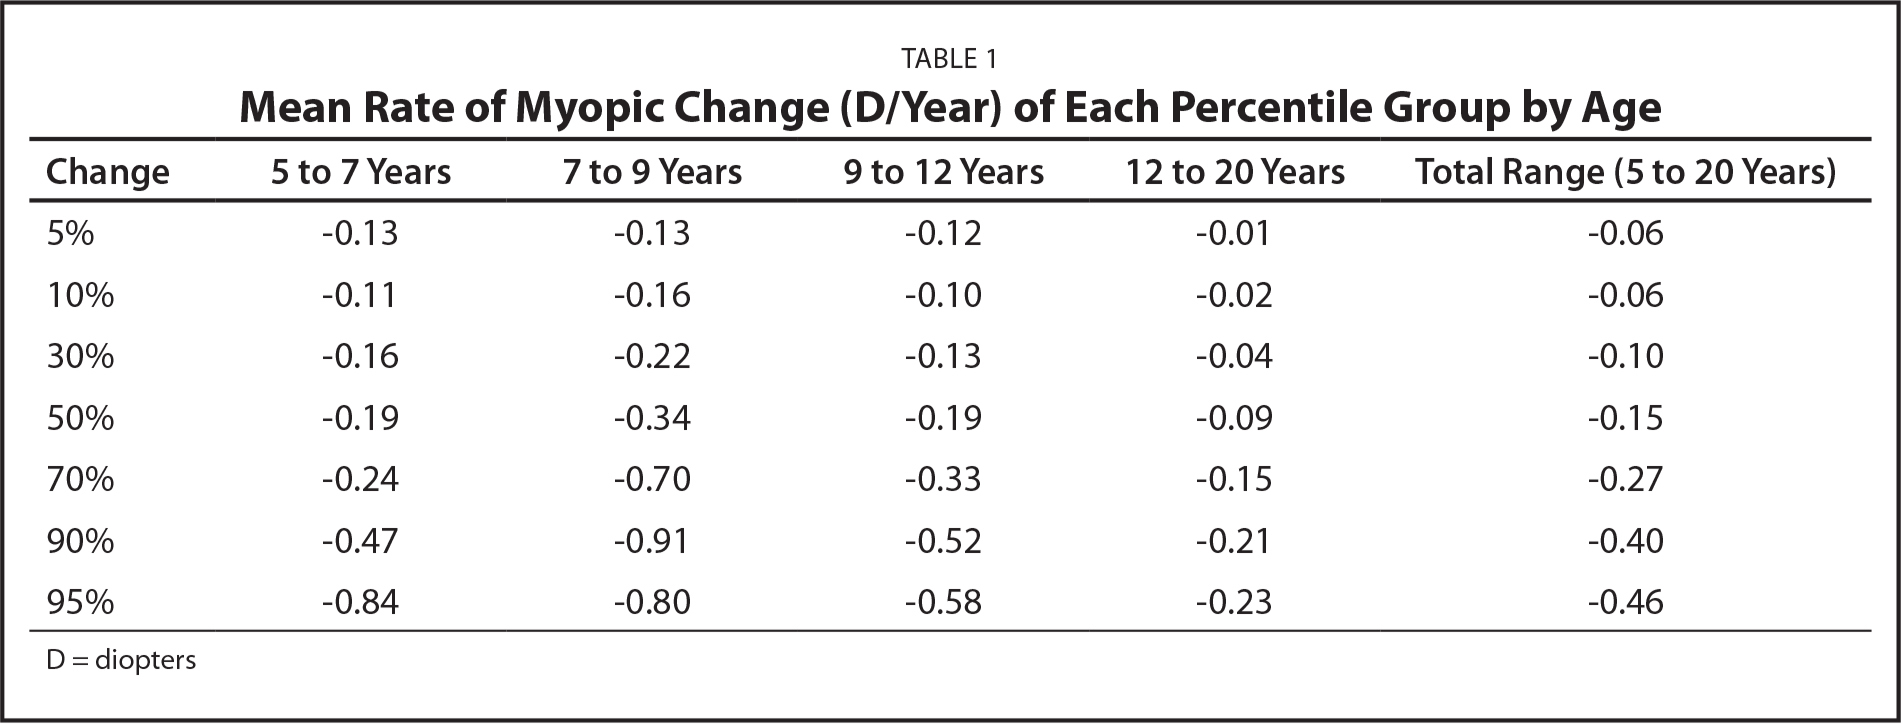 Mean Rate of Myopic Change (D/Year) of Each Percentile Group by Age